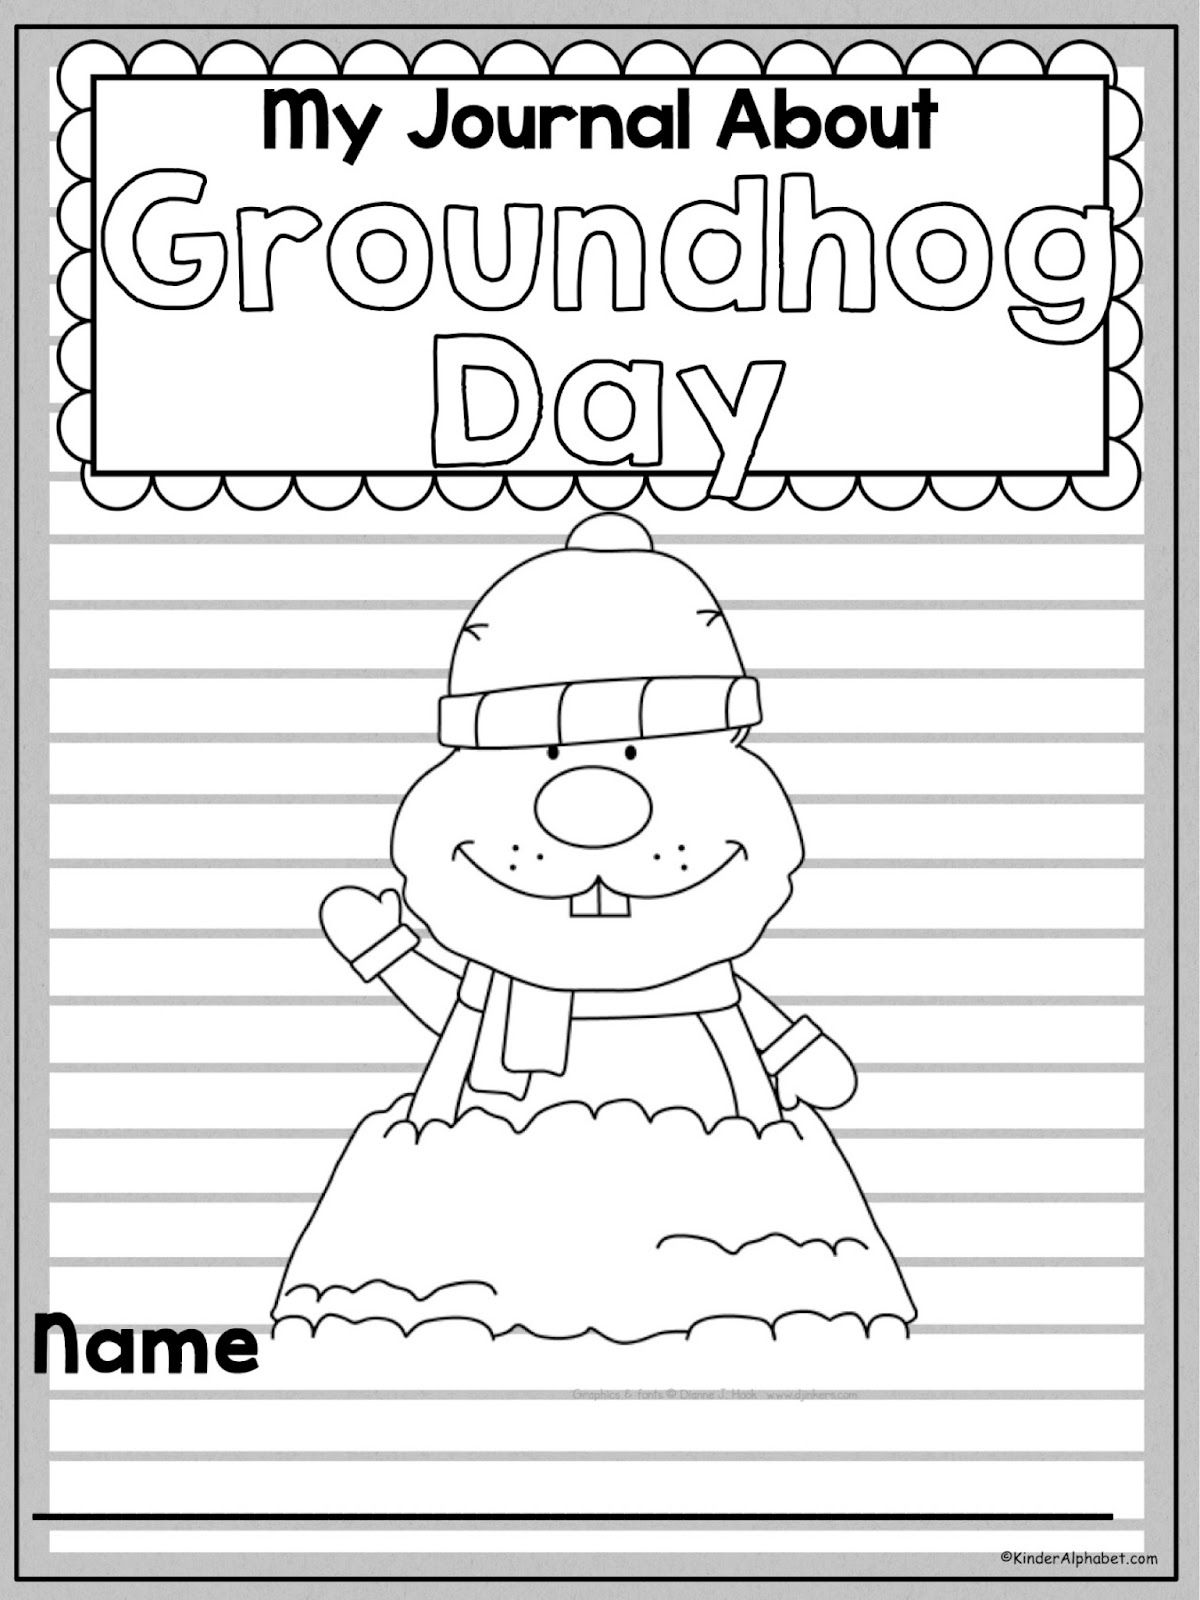 Groundhog Day Freebie On The Blog